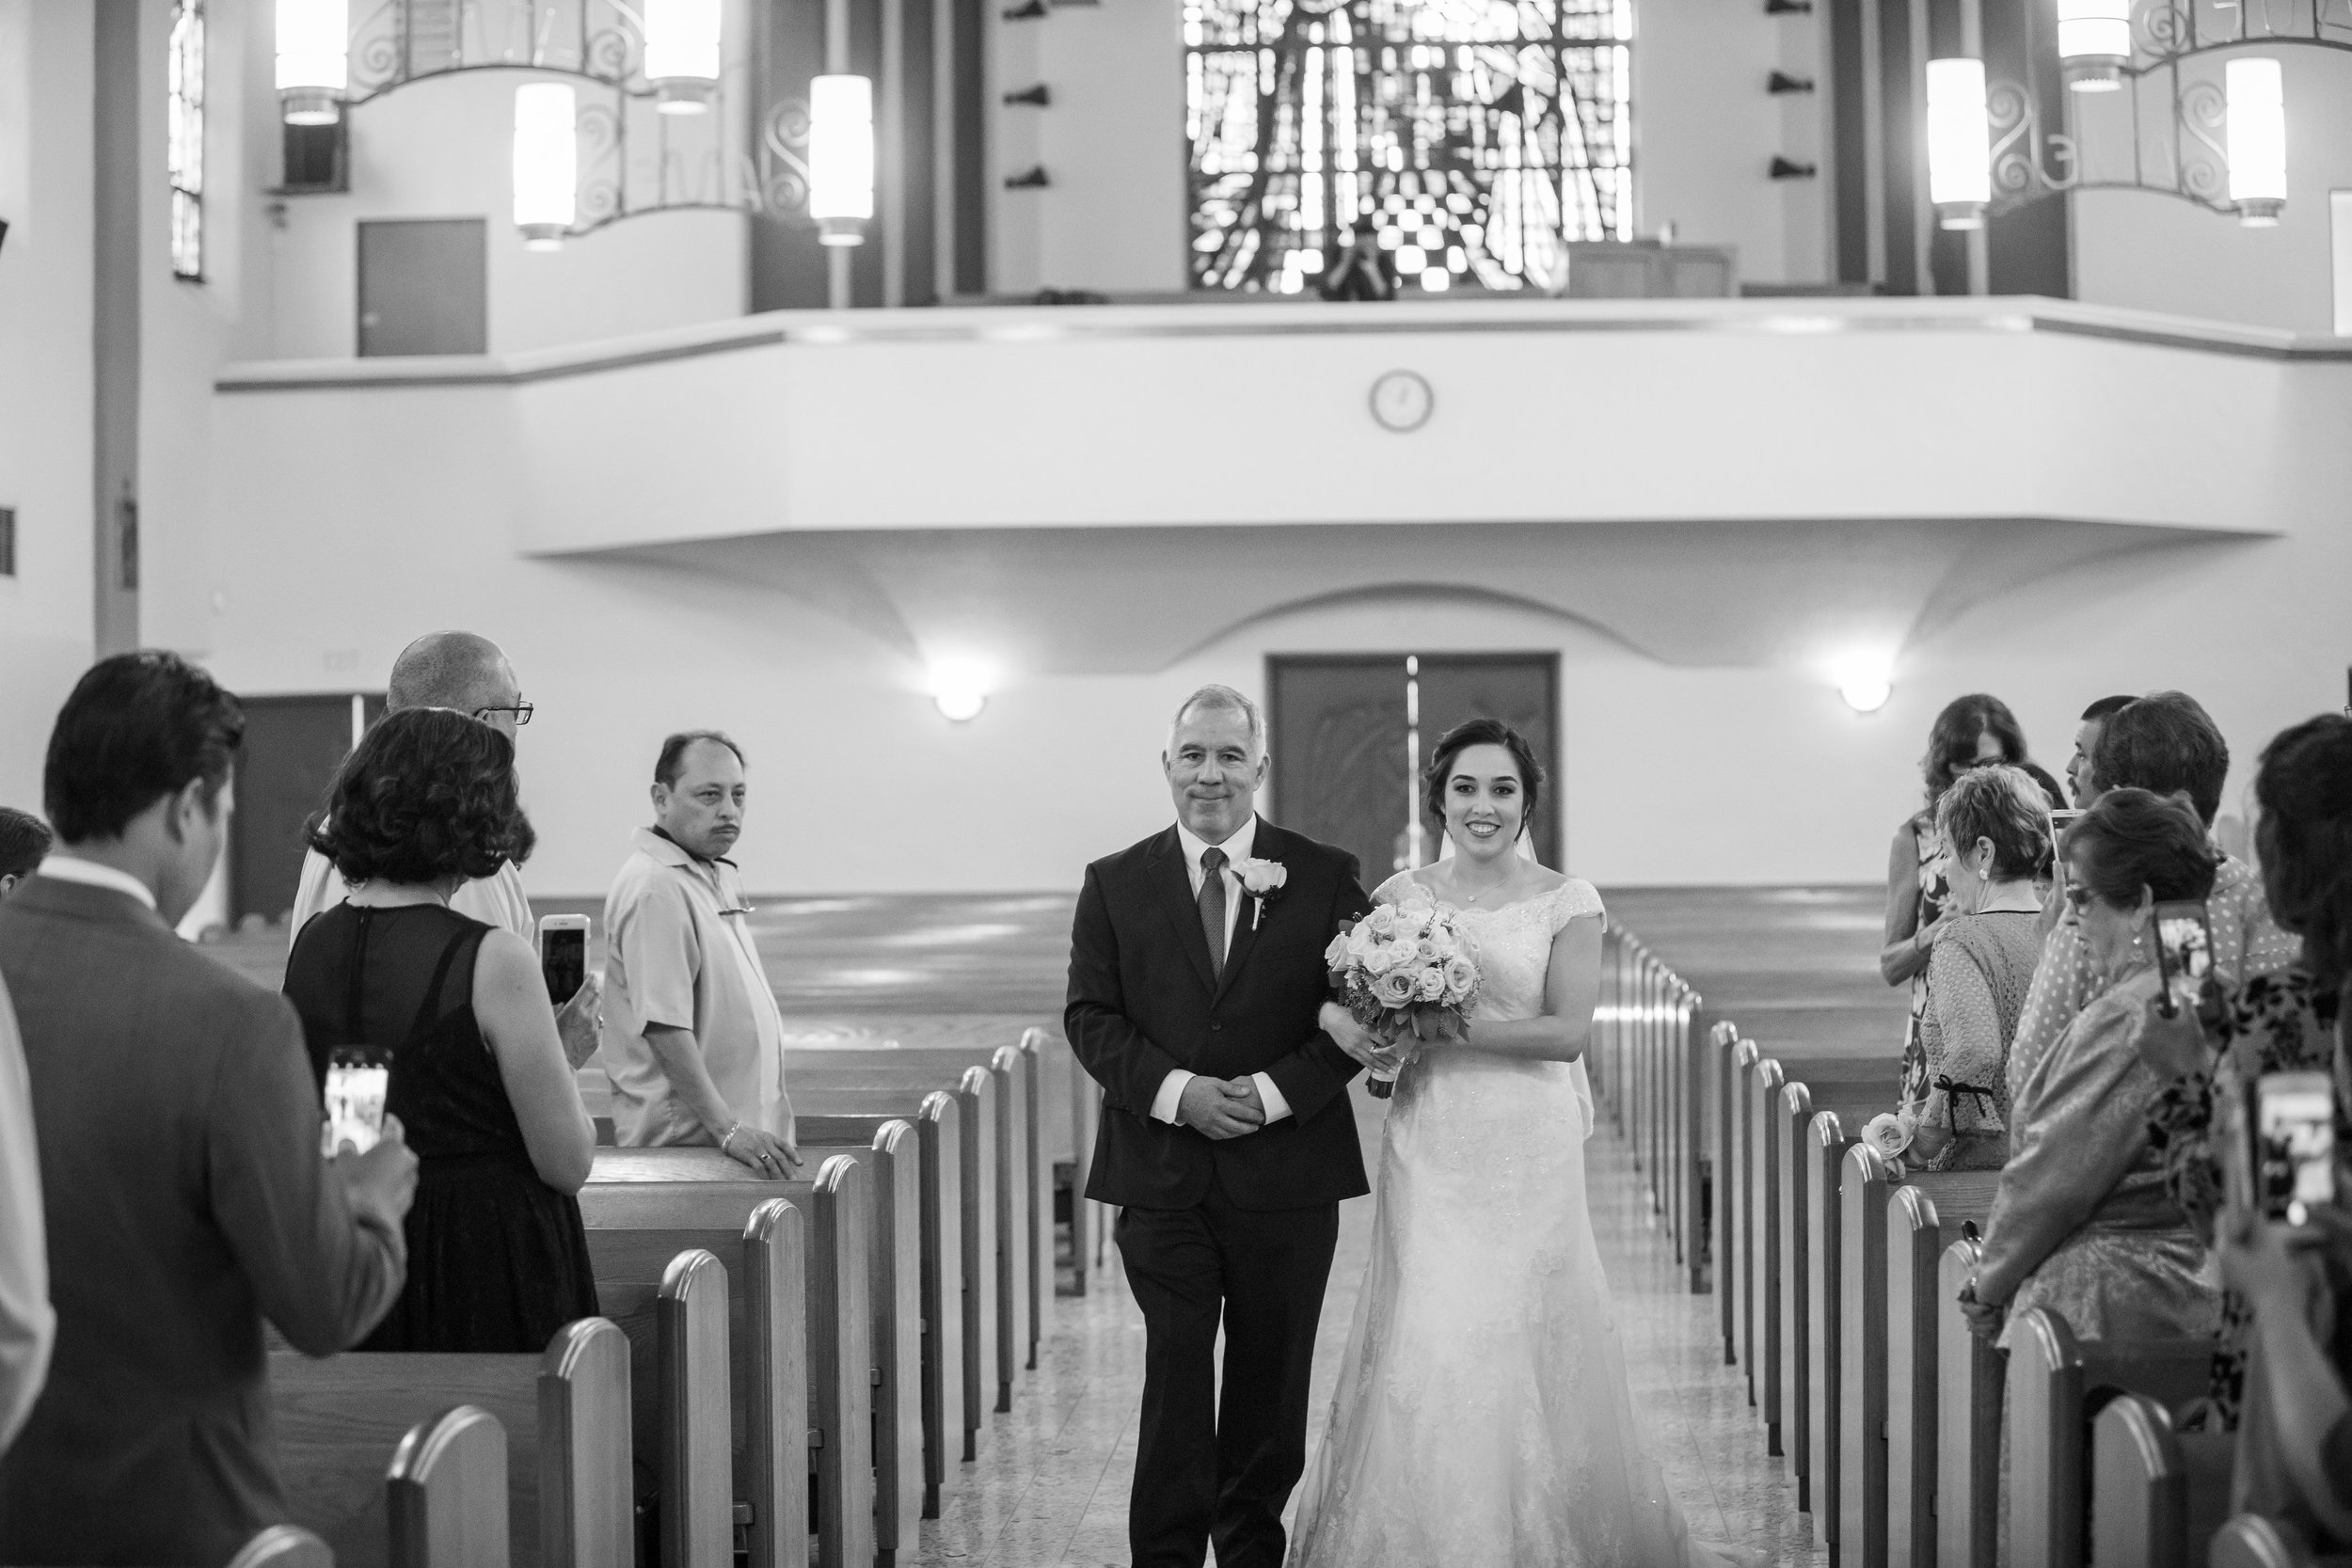 ! Bridal Entrance to Catholic Church Ceremony with Father.jpg